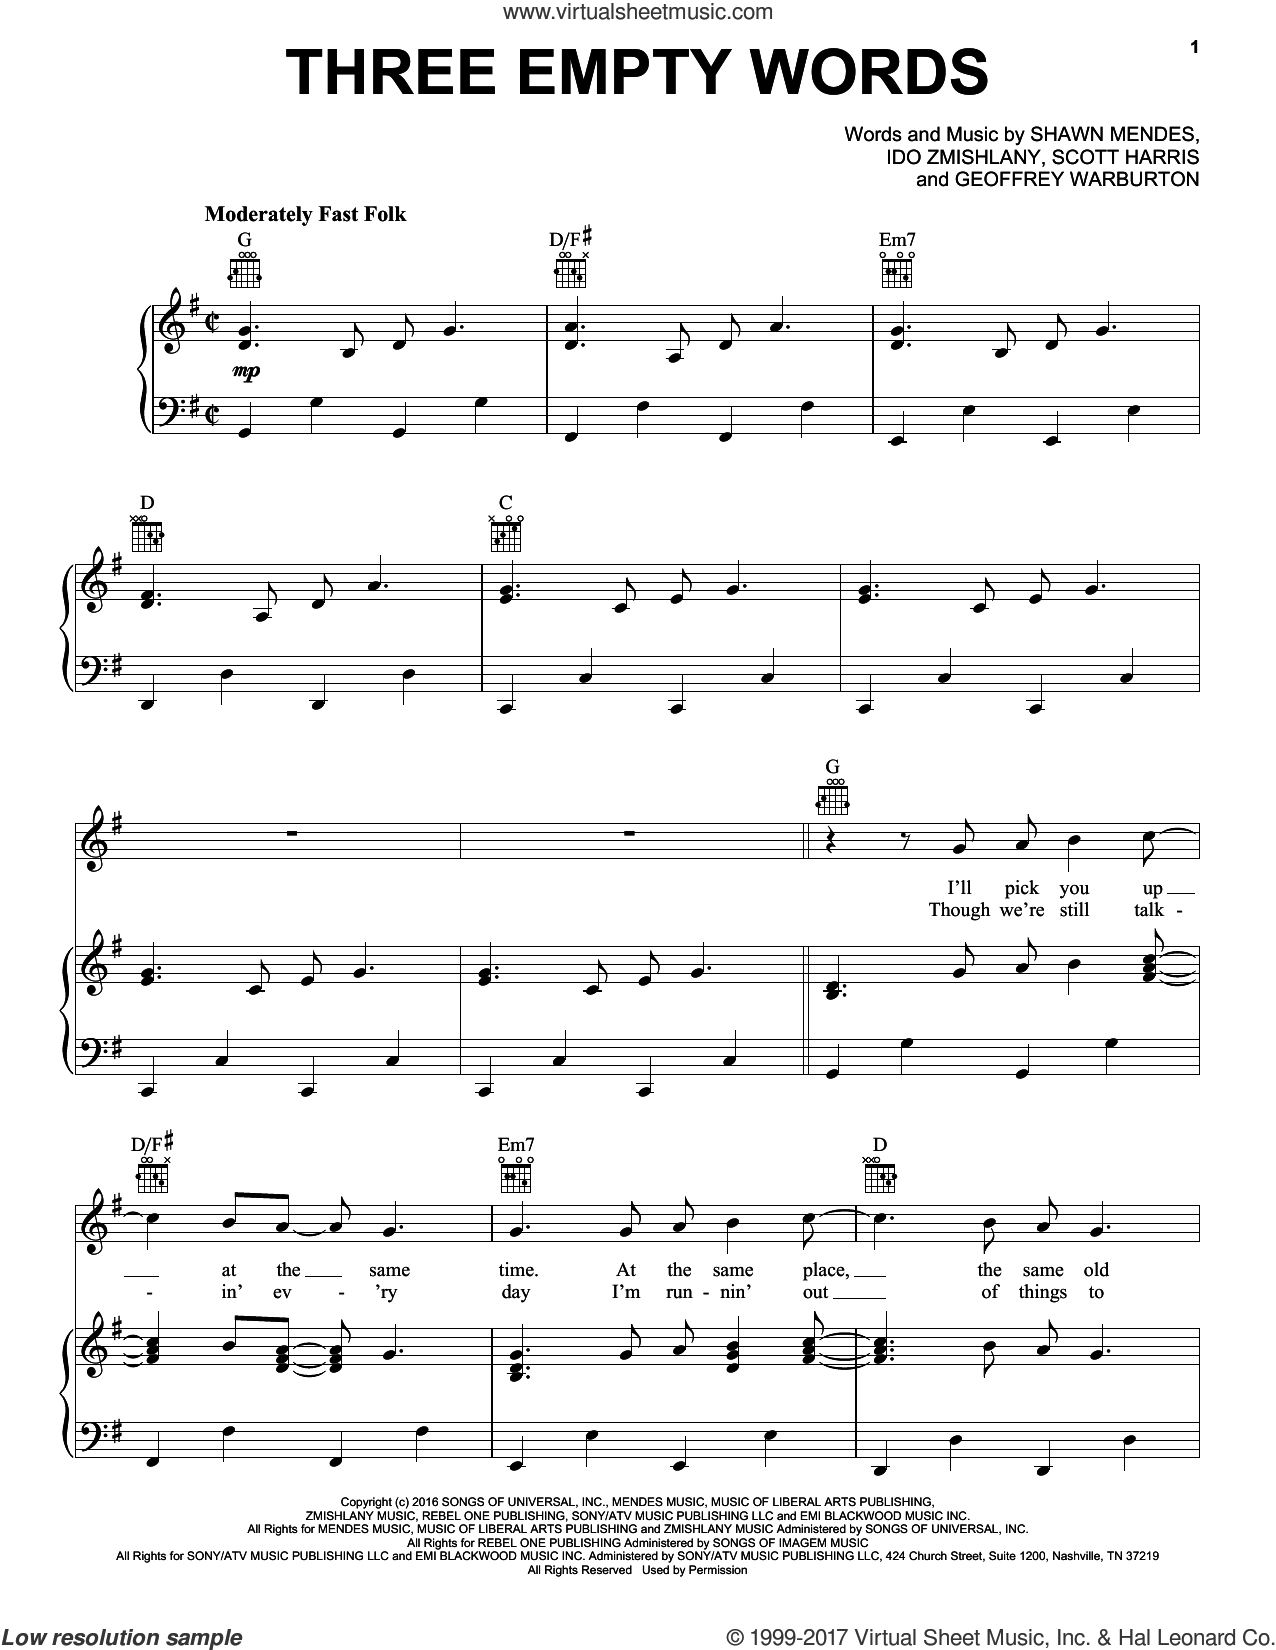 Three Empty Words sheet music for voice, piano or guitar by Shawn Mendes, Geoffrey Warburton, Ido Zmishlany and Scott Harris, intermediate skill level